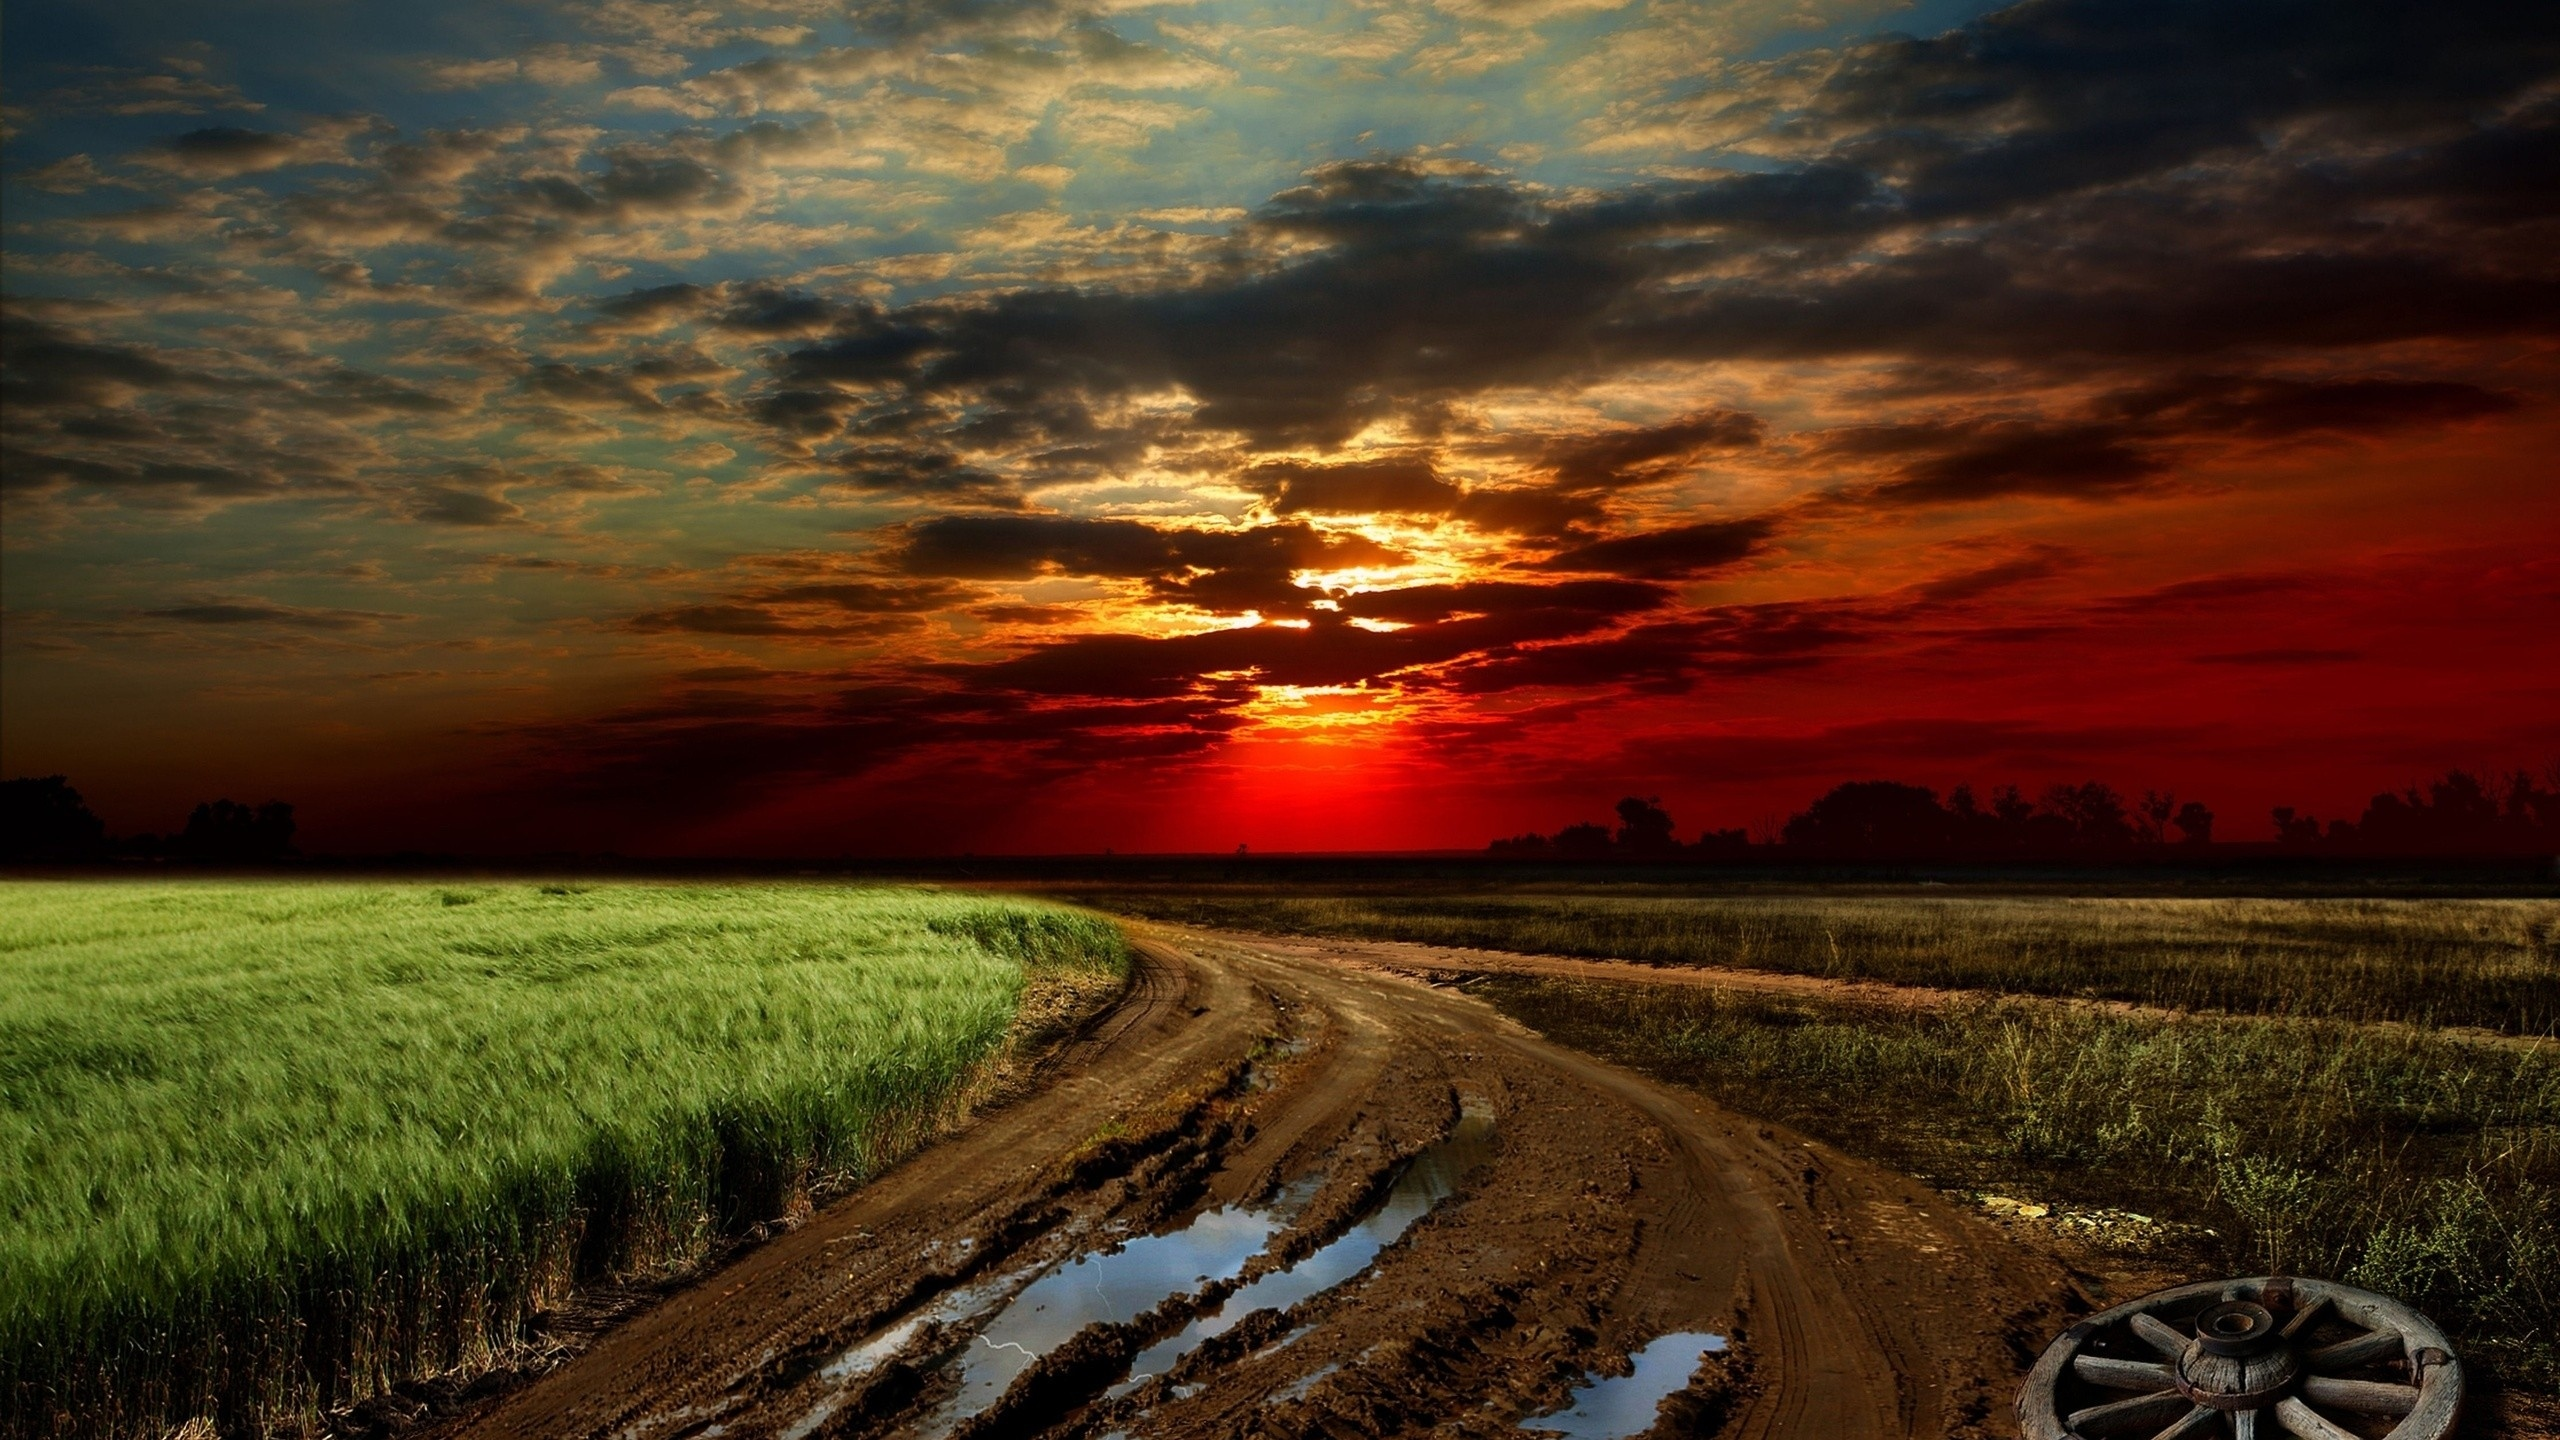 Road Sunset Wallpaper 2560x1440 Dirty Road F...